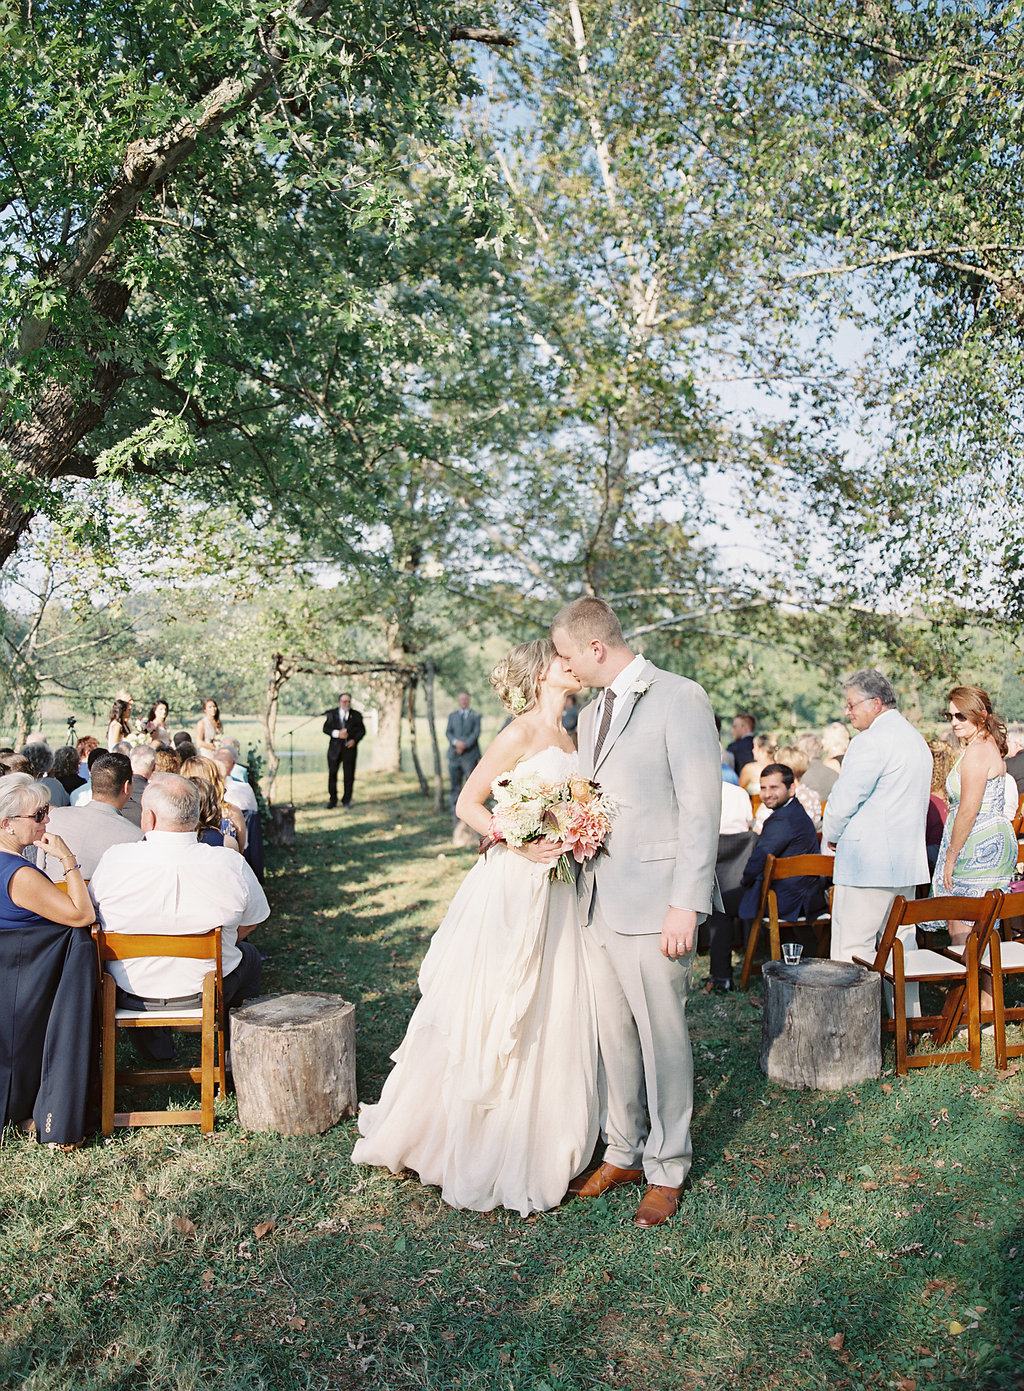 SawyerBaird_CM ceremony kiss